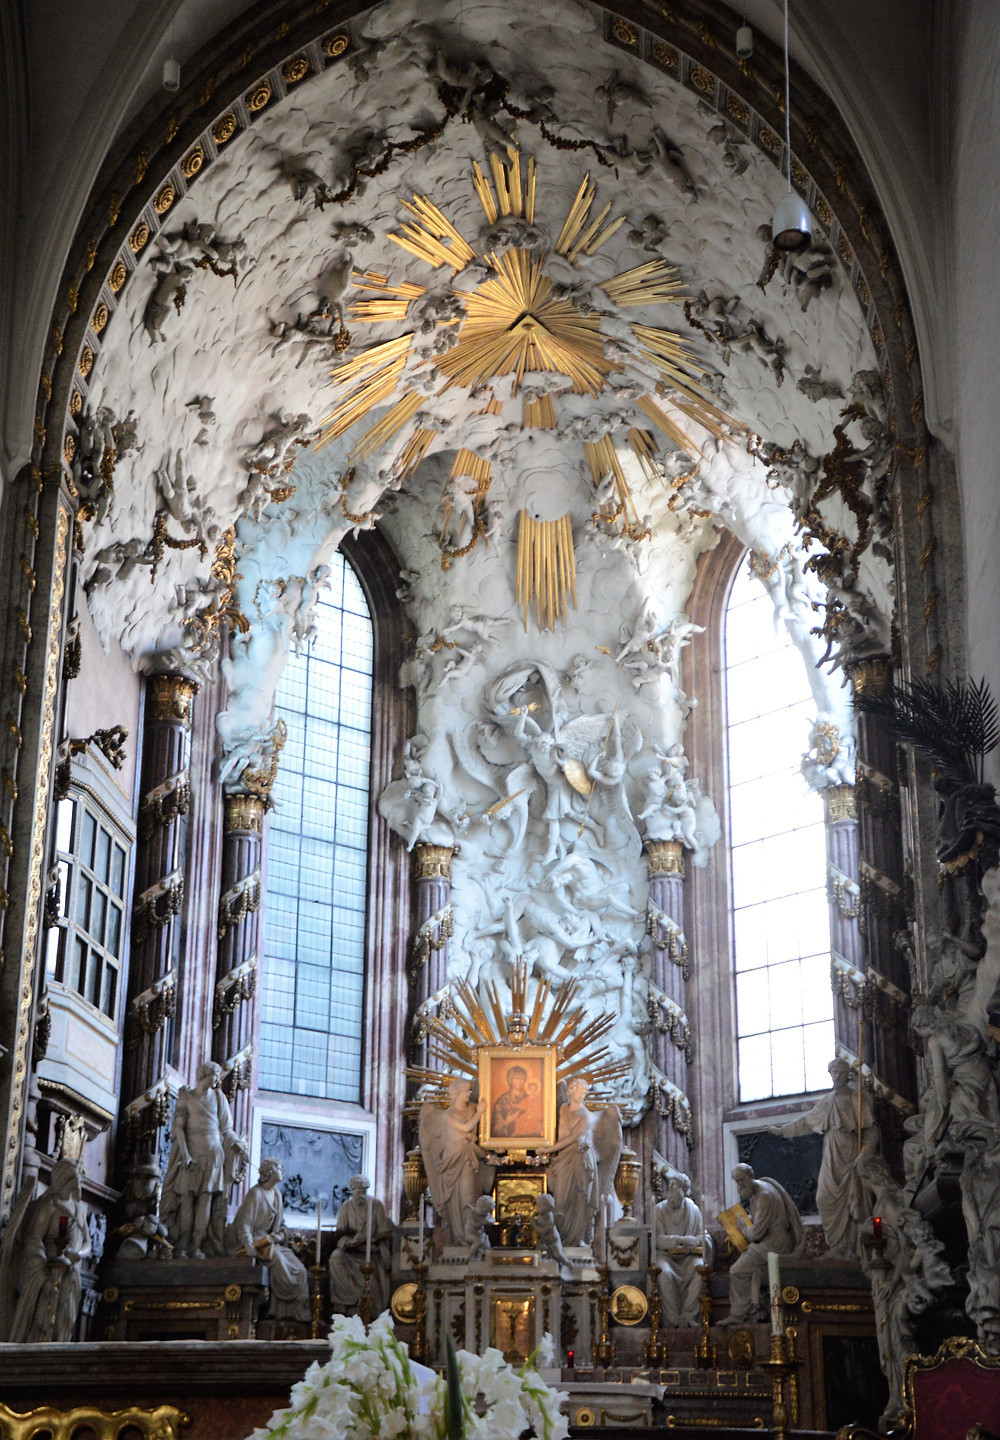 The centerpiece of St Michael's Church in Vienna is Maria Candia, a Byzantine icon of the Virgin Mary in the High Altar